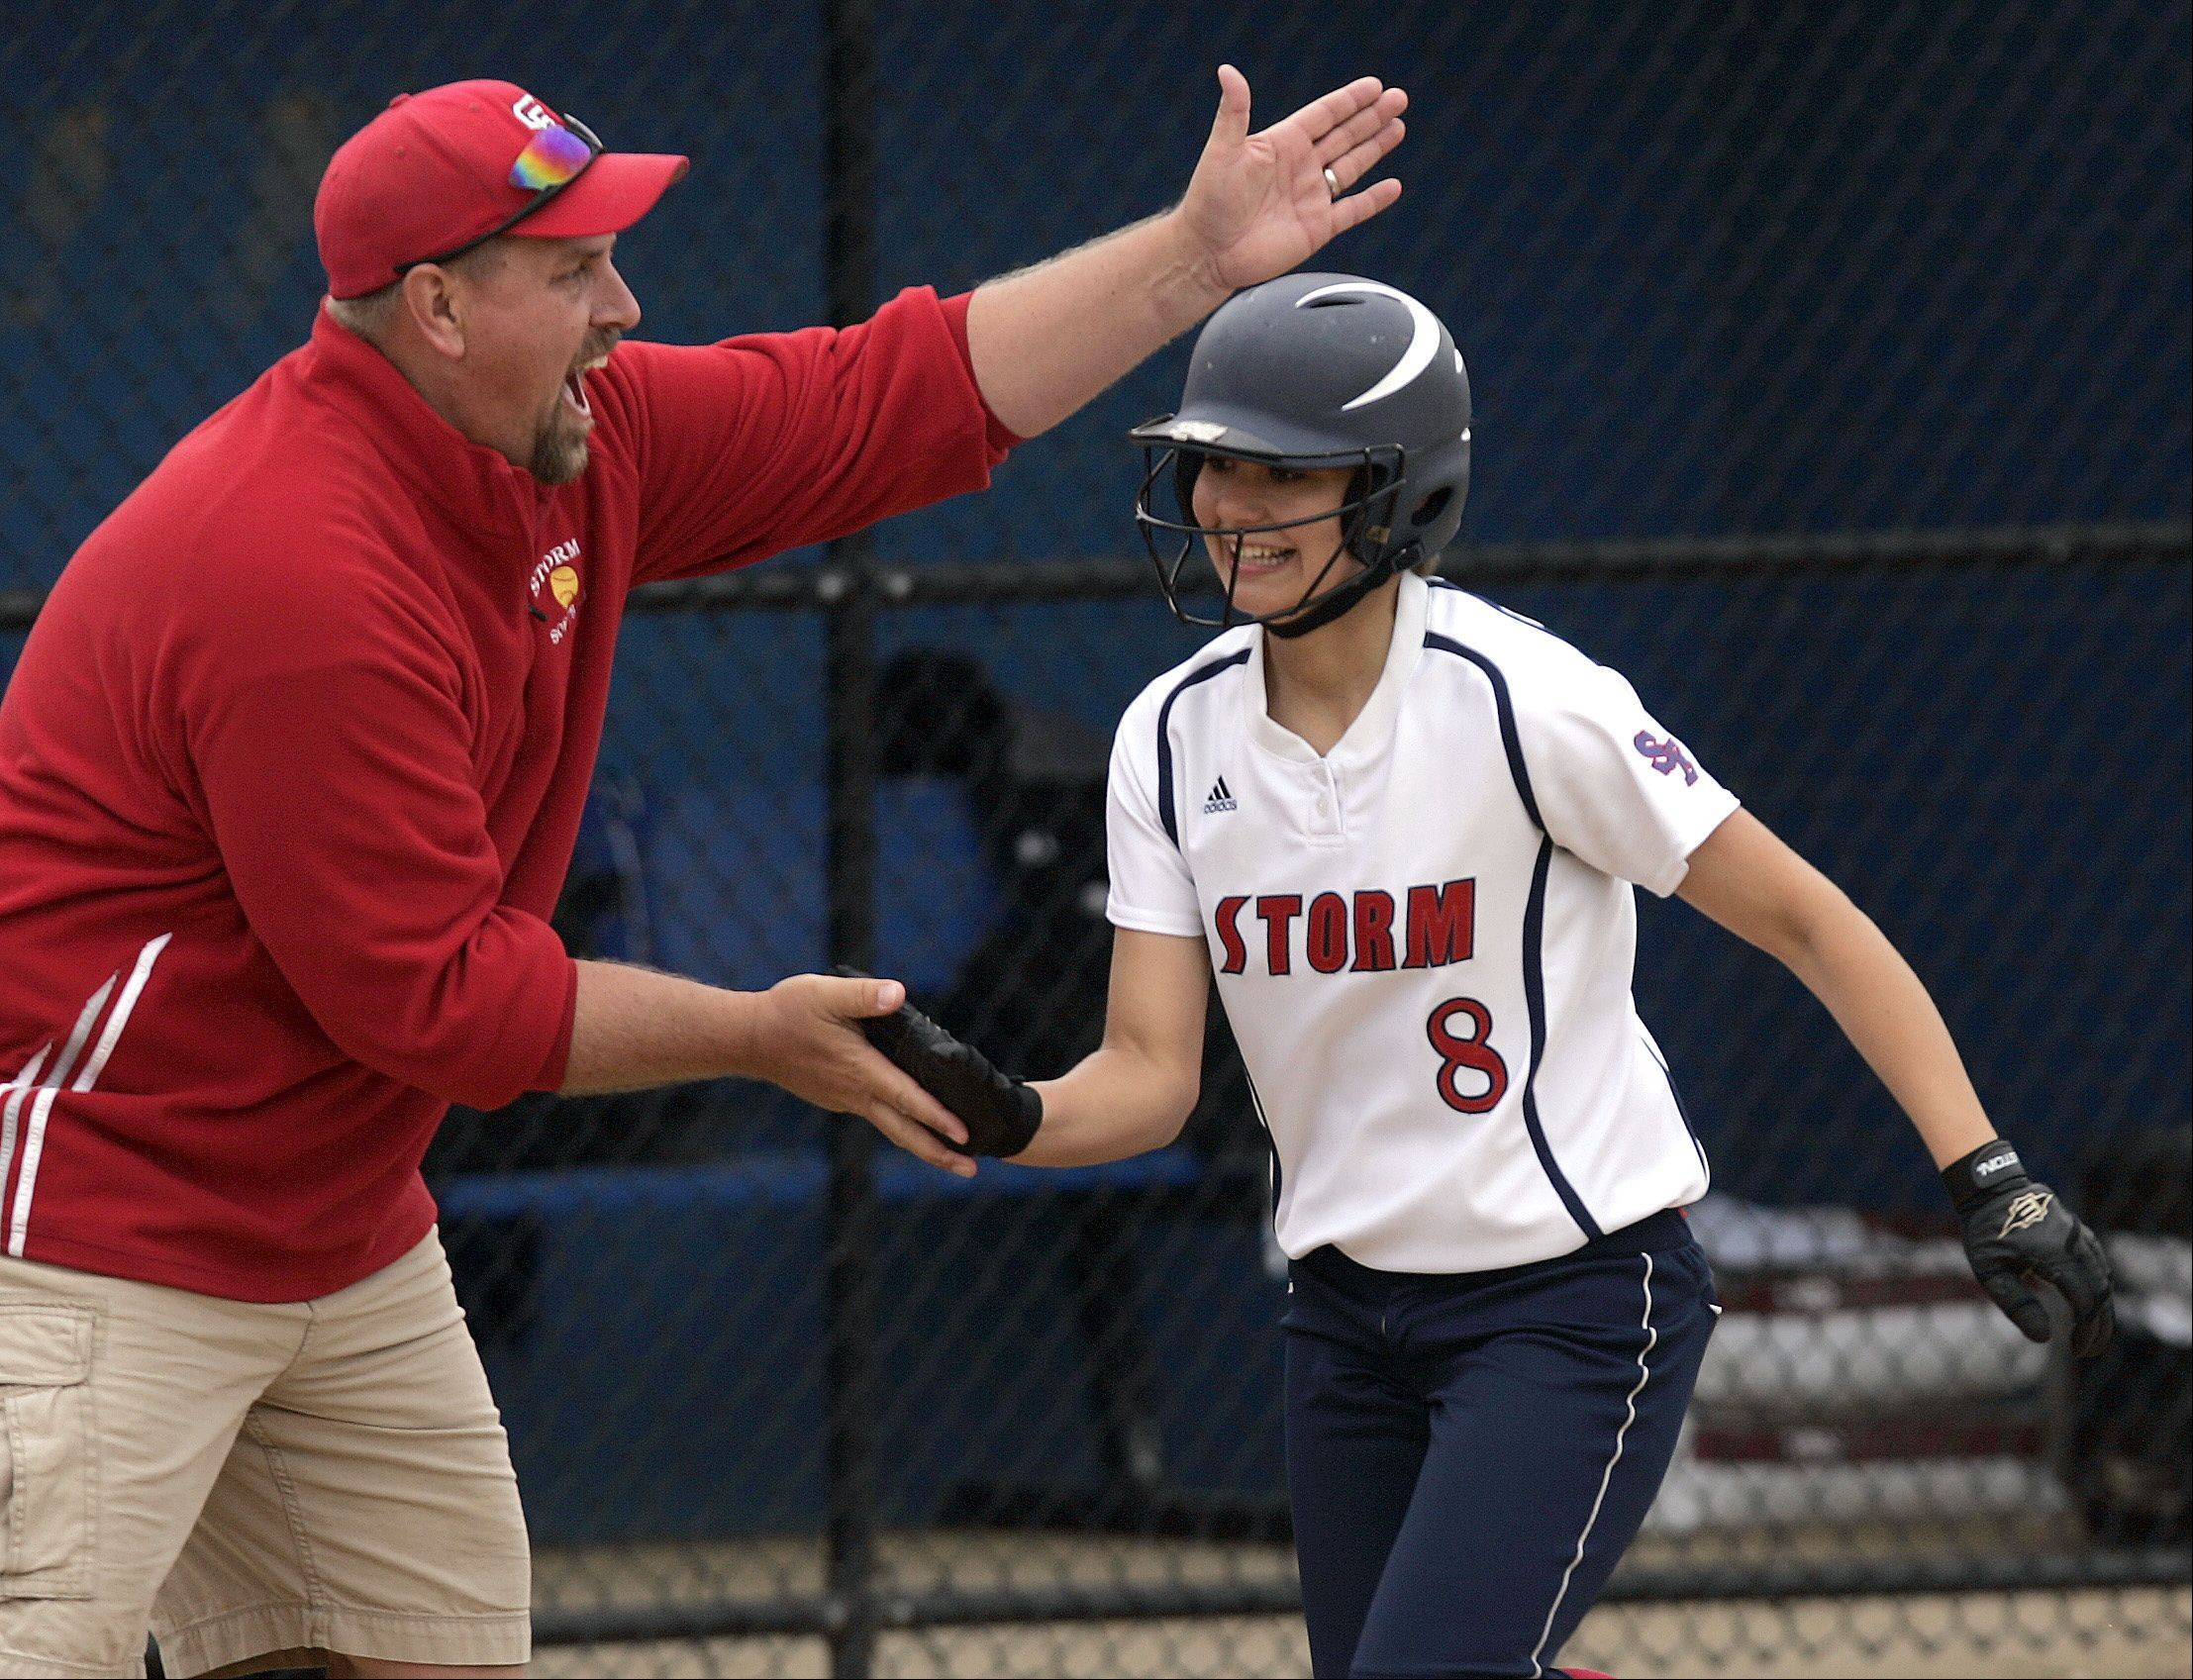 South Elgin�s Victoria Watt is greeted by head coach Jason Schaal at third base after belting a home run as the first batter in the game during the Class 4A regional softball final at St. Charles North Saturday.